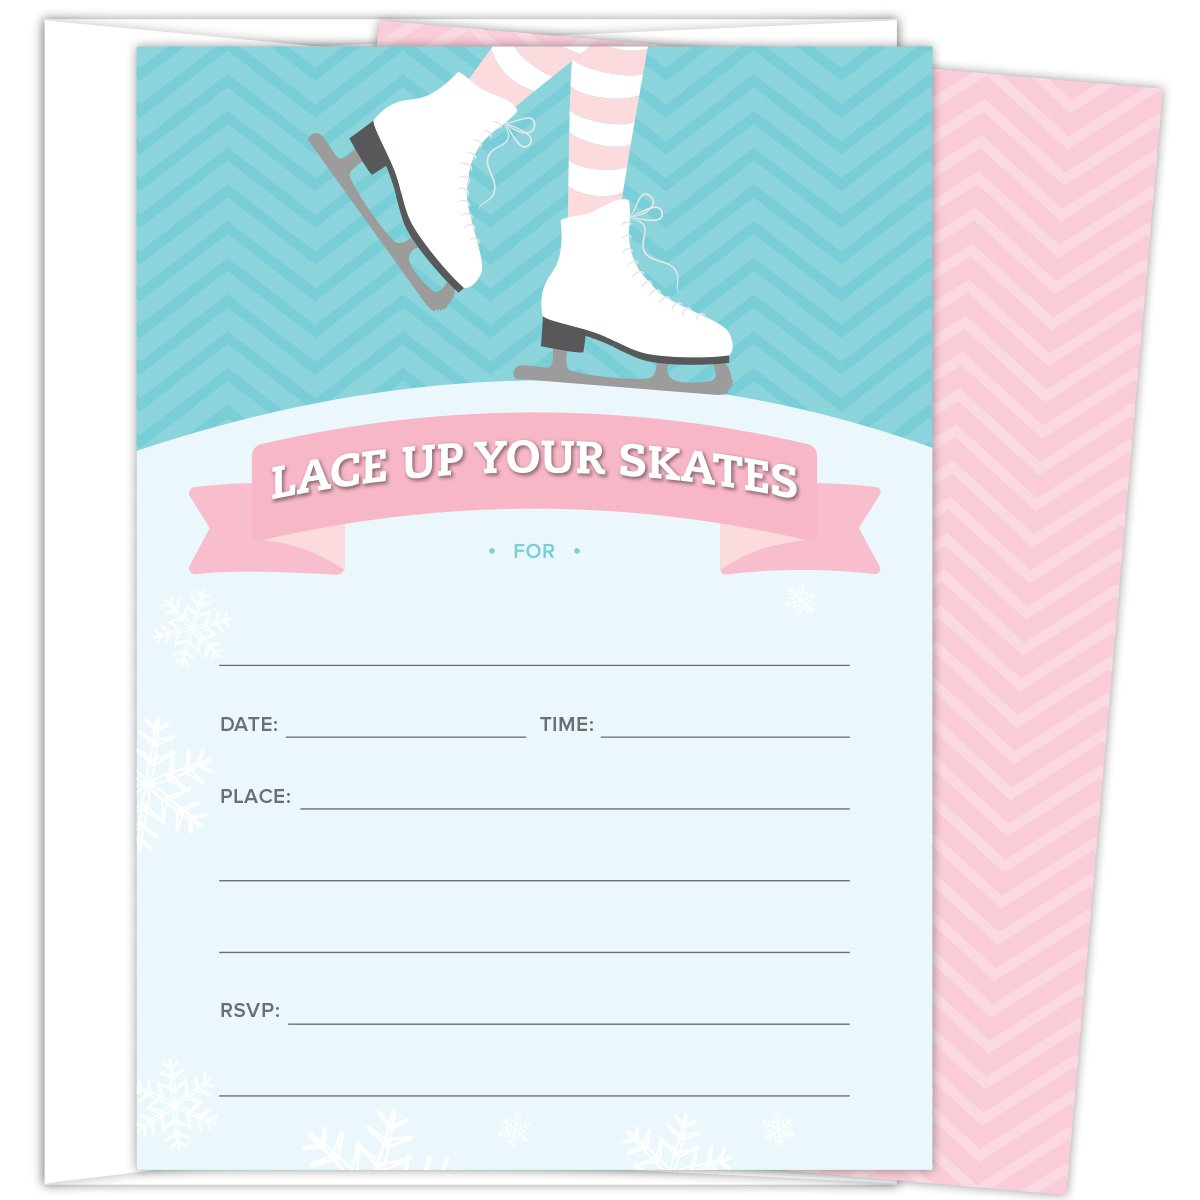 Ice Skating Invitations for Birthday Parties and Other Occasions. Set of 25 Fill In Style Invitations with Envelopes. Pink, Turquoise and Light Blue design with Skates, Snowflakes and Chevron Stripes. by Koko Paper Co